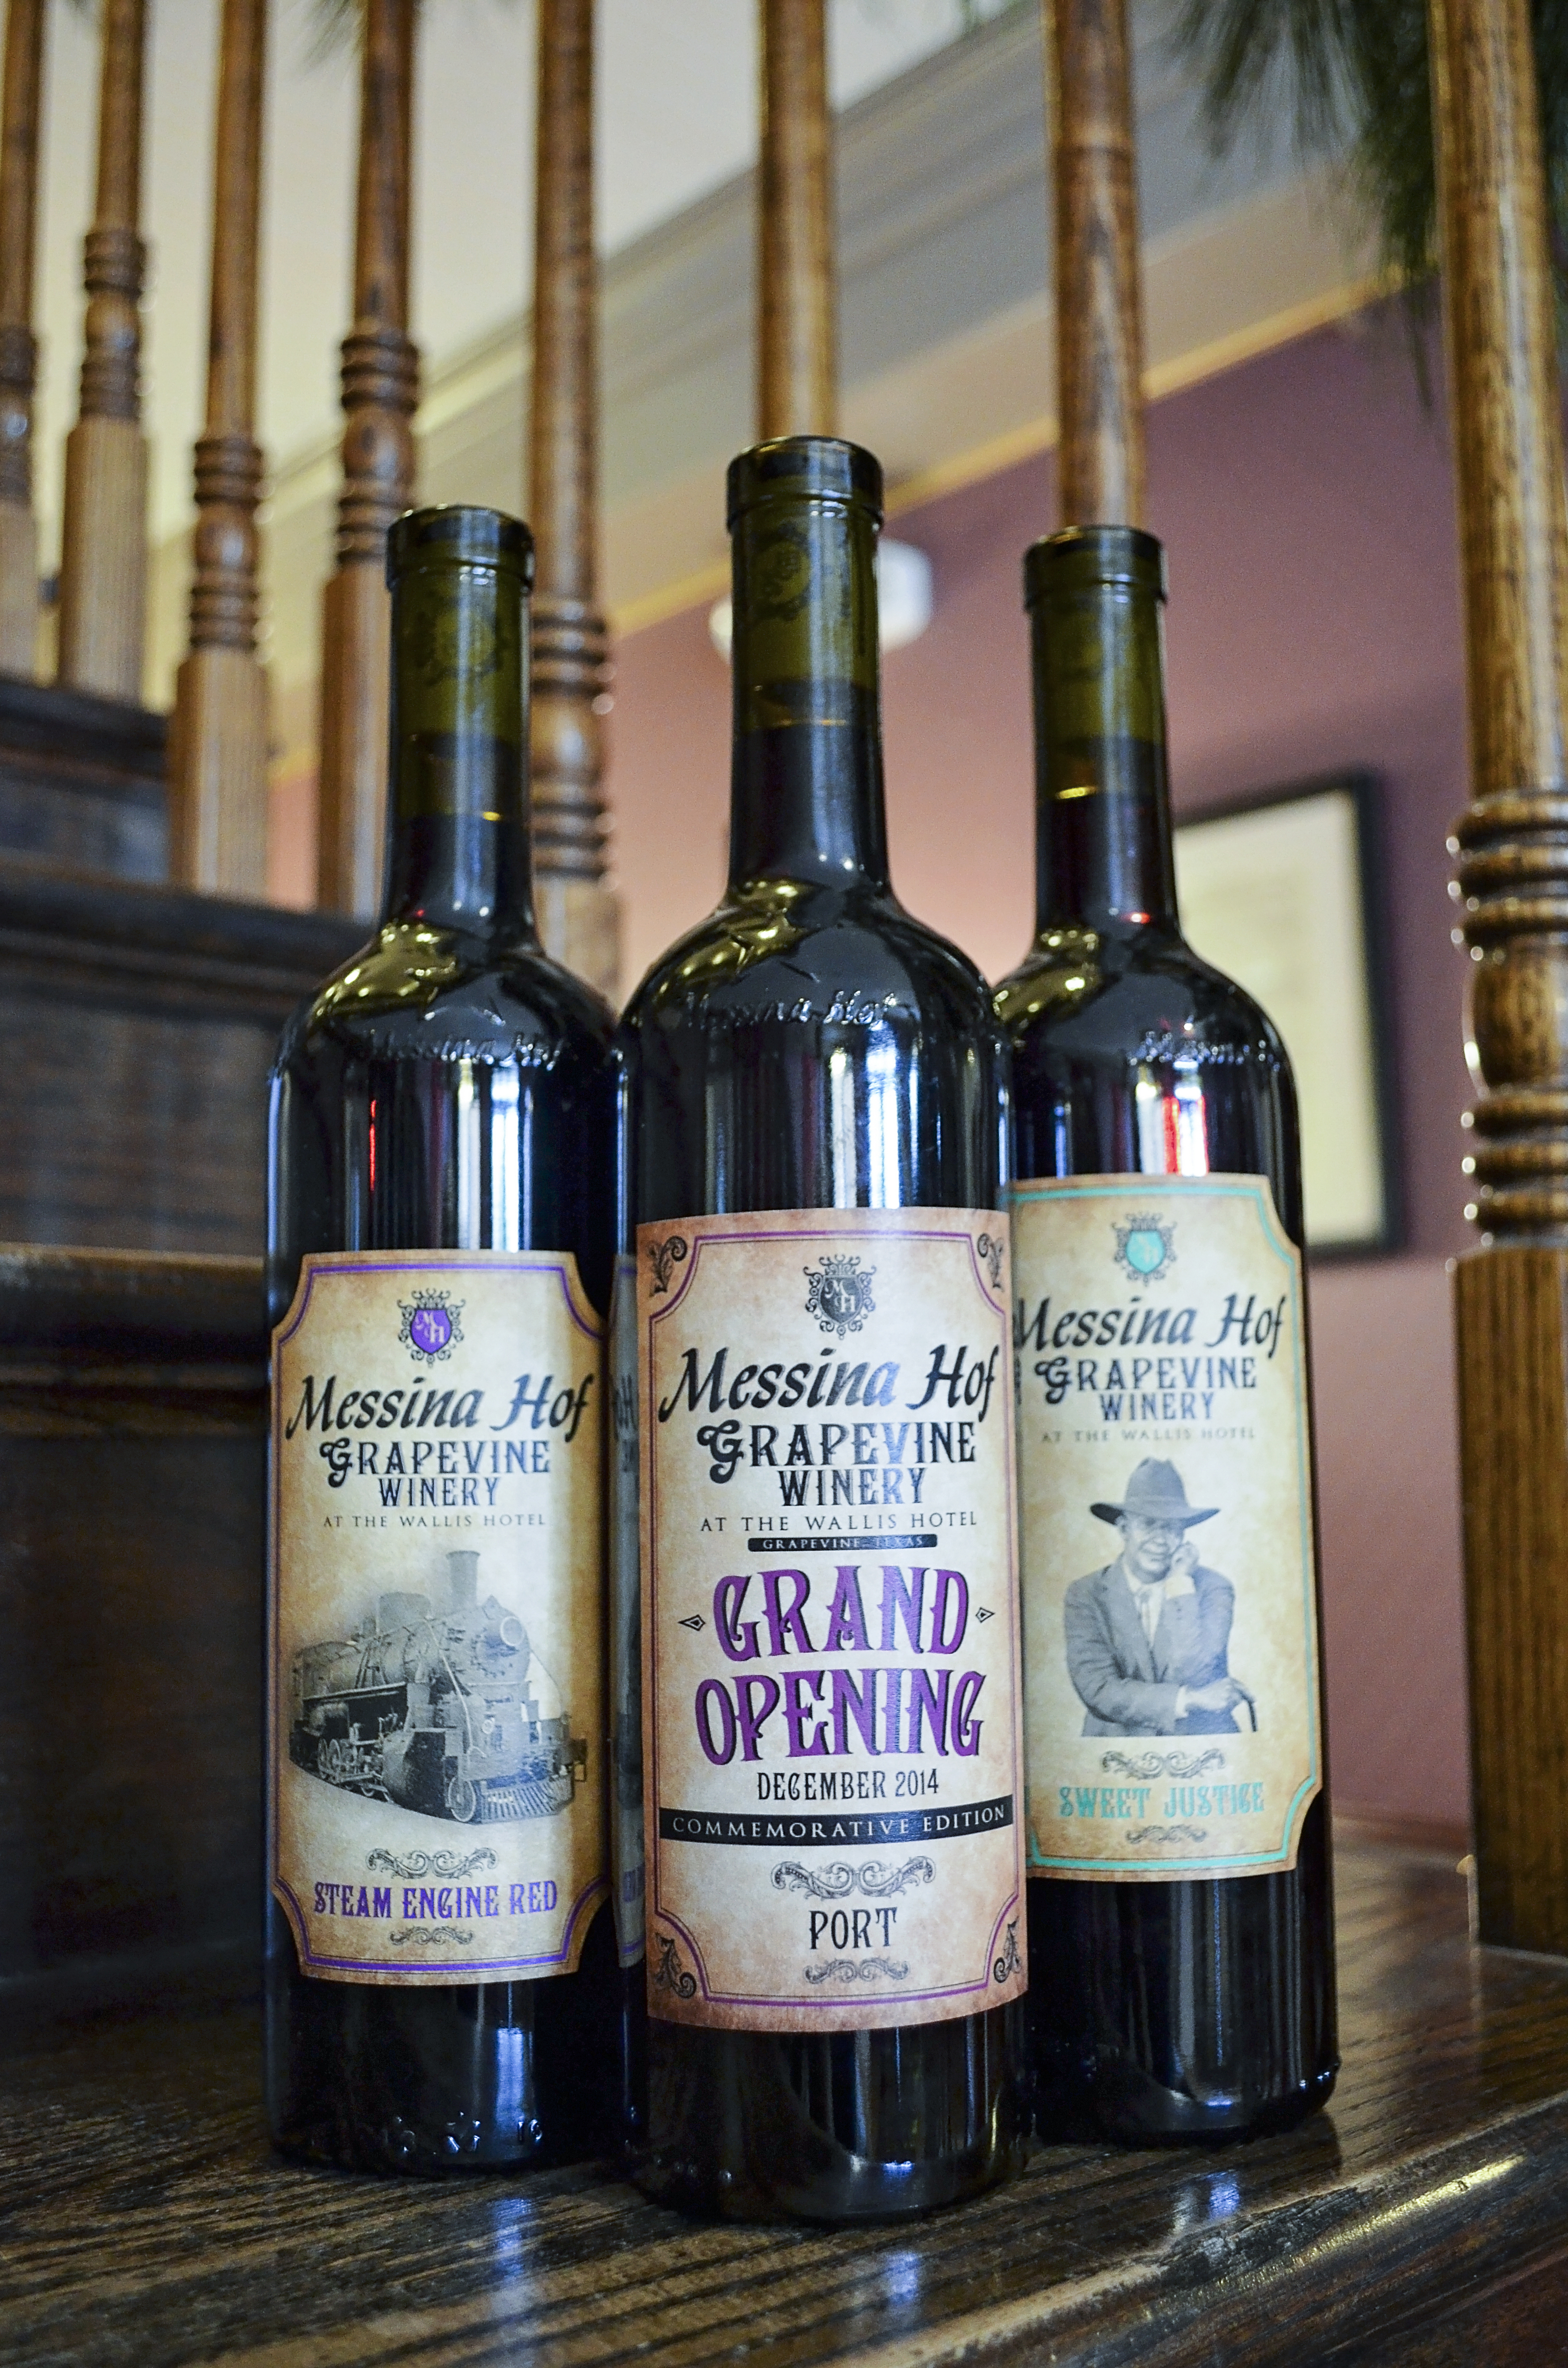 Messina Hof is one the popular wineries in Grapevine